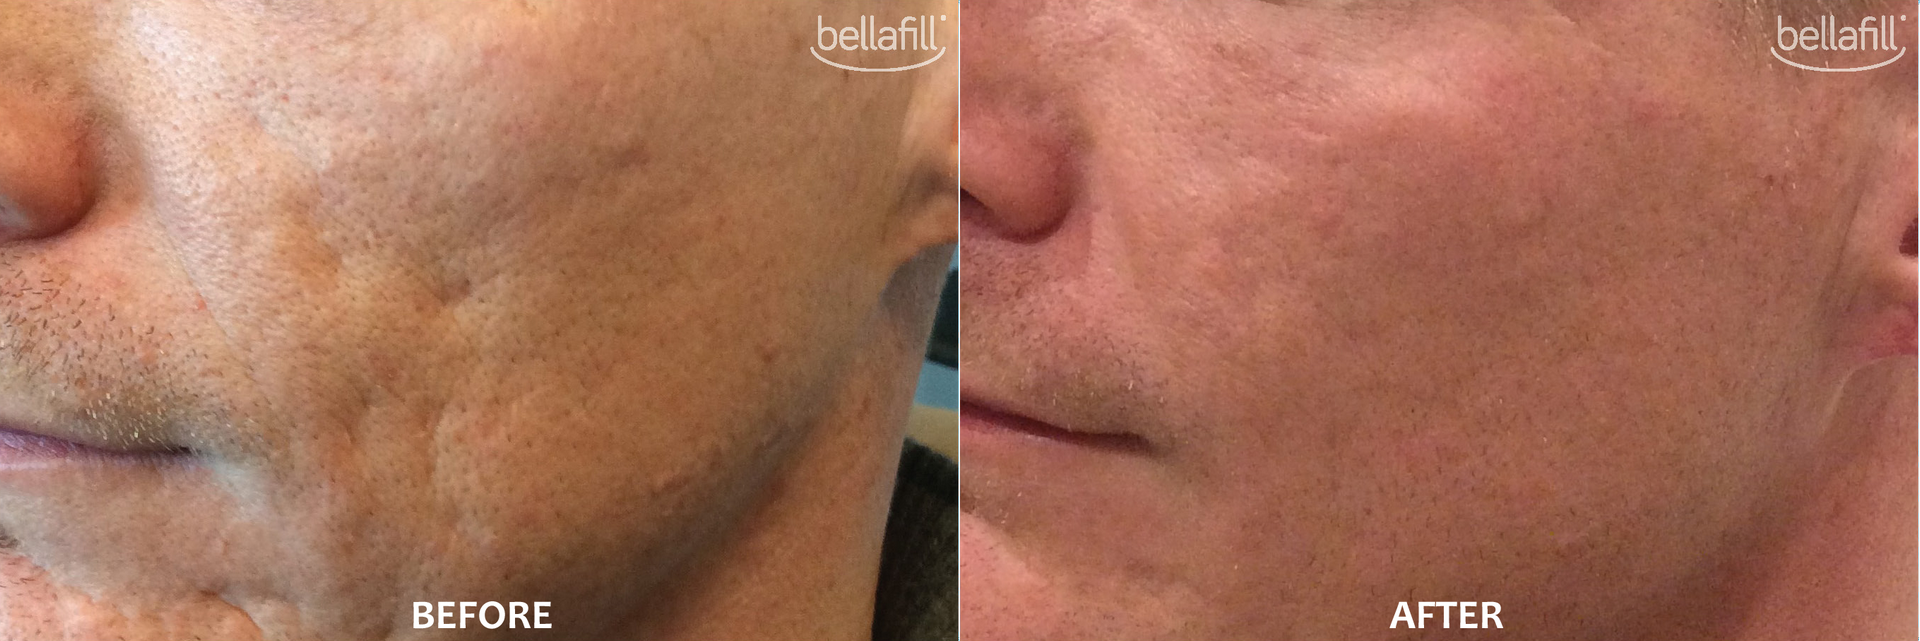 Bellafill Acne Before and After